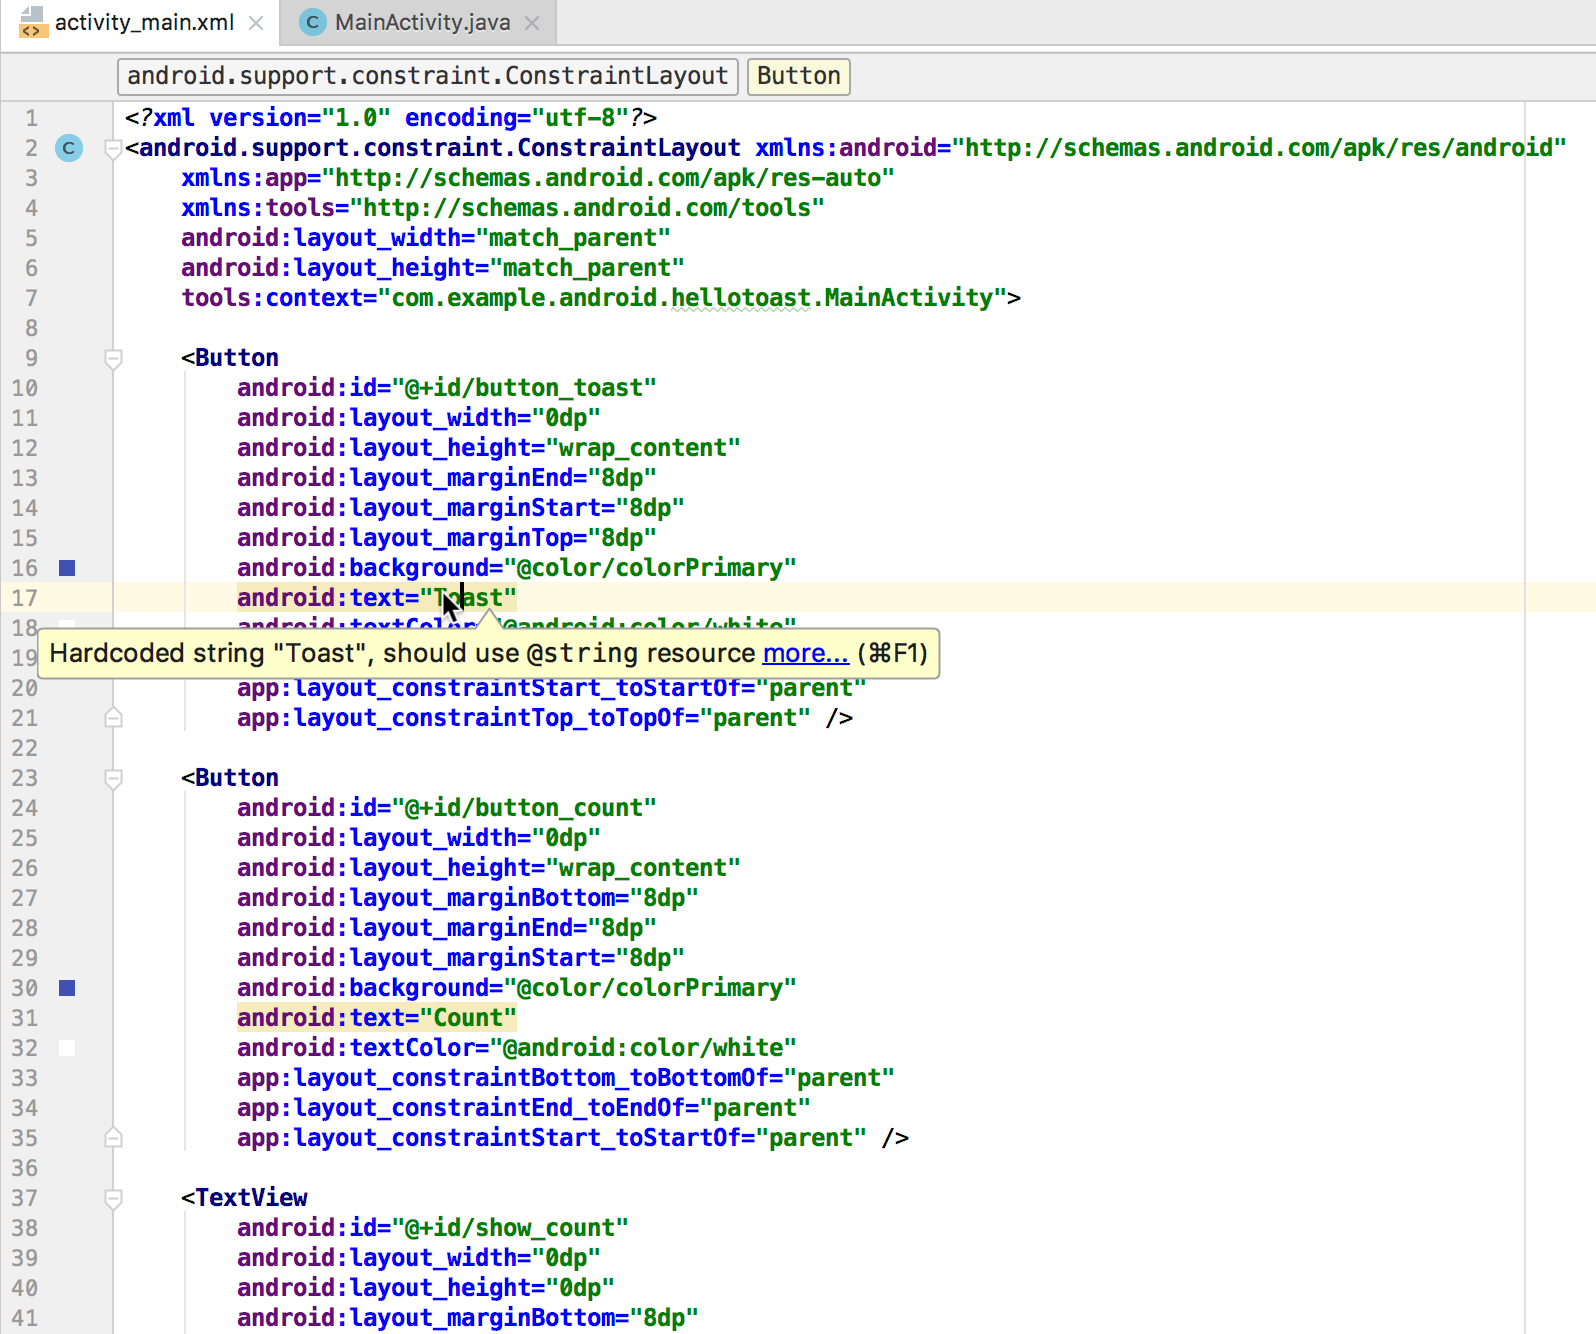 The XML code for the Hello Toast layout showing the first warning